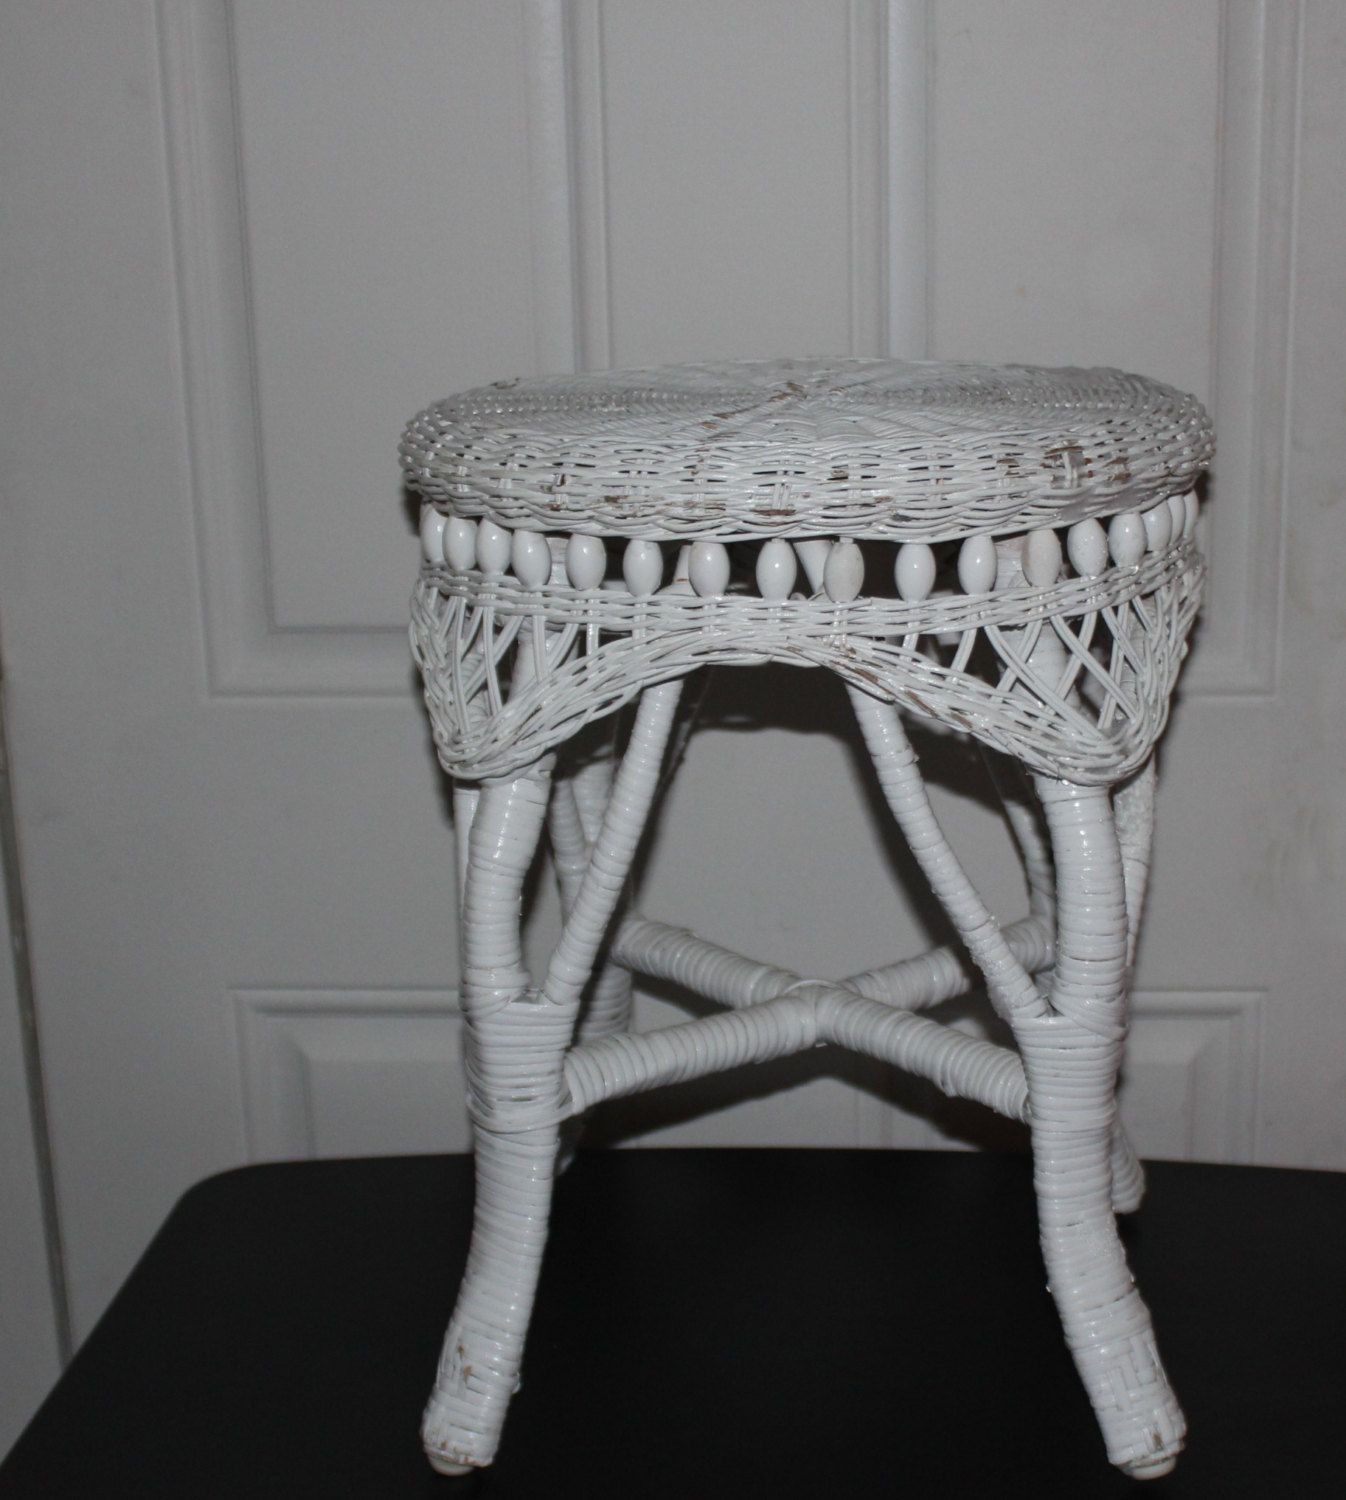 Antique Wicker Stool, Excellent Condition, No Damage, Great Vanity Stool,  White Wicker